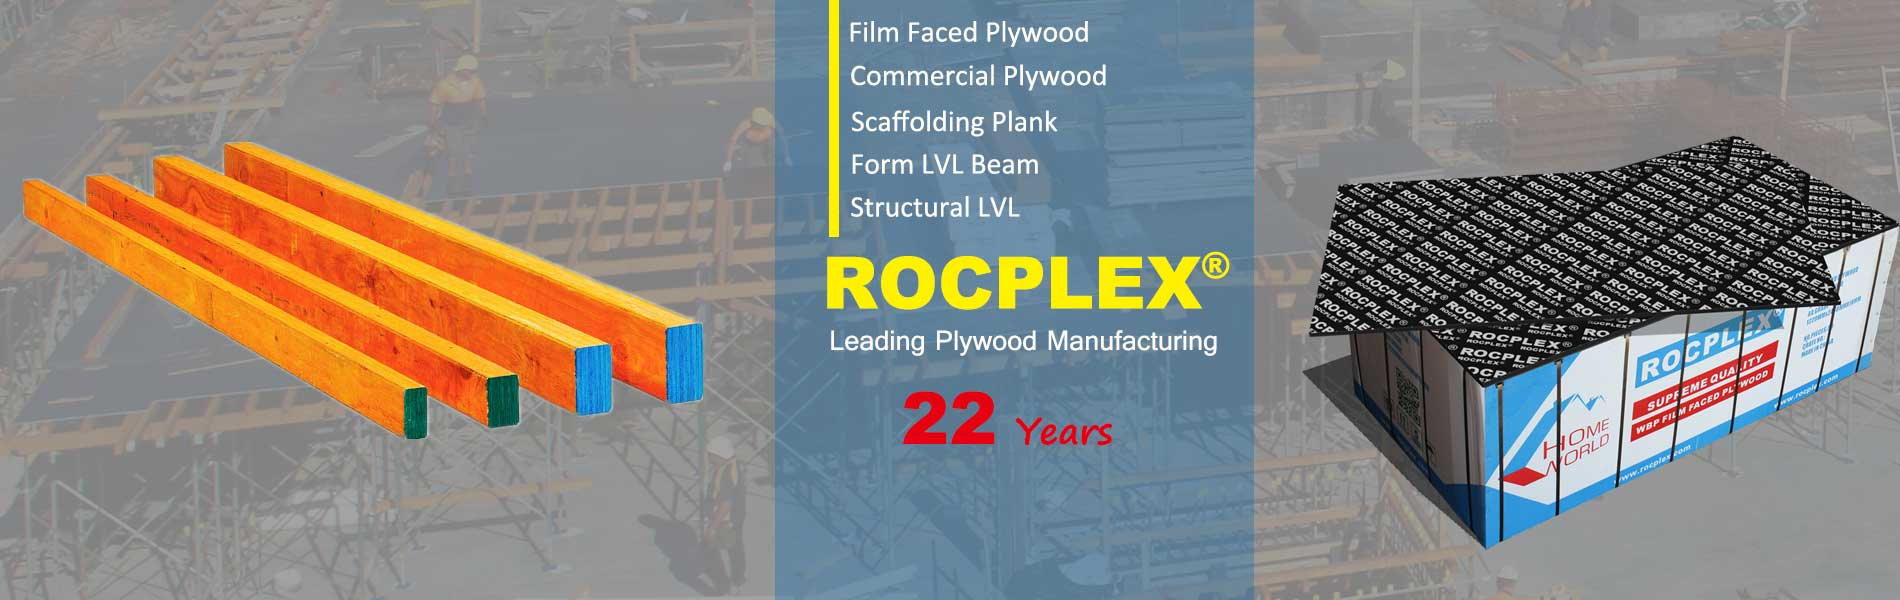 ROCPLEX film faced